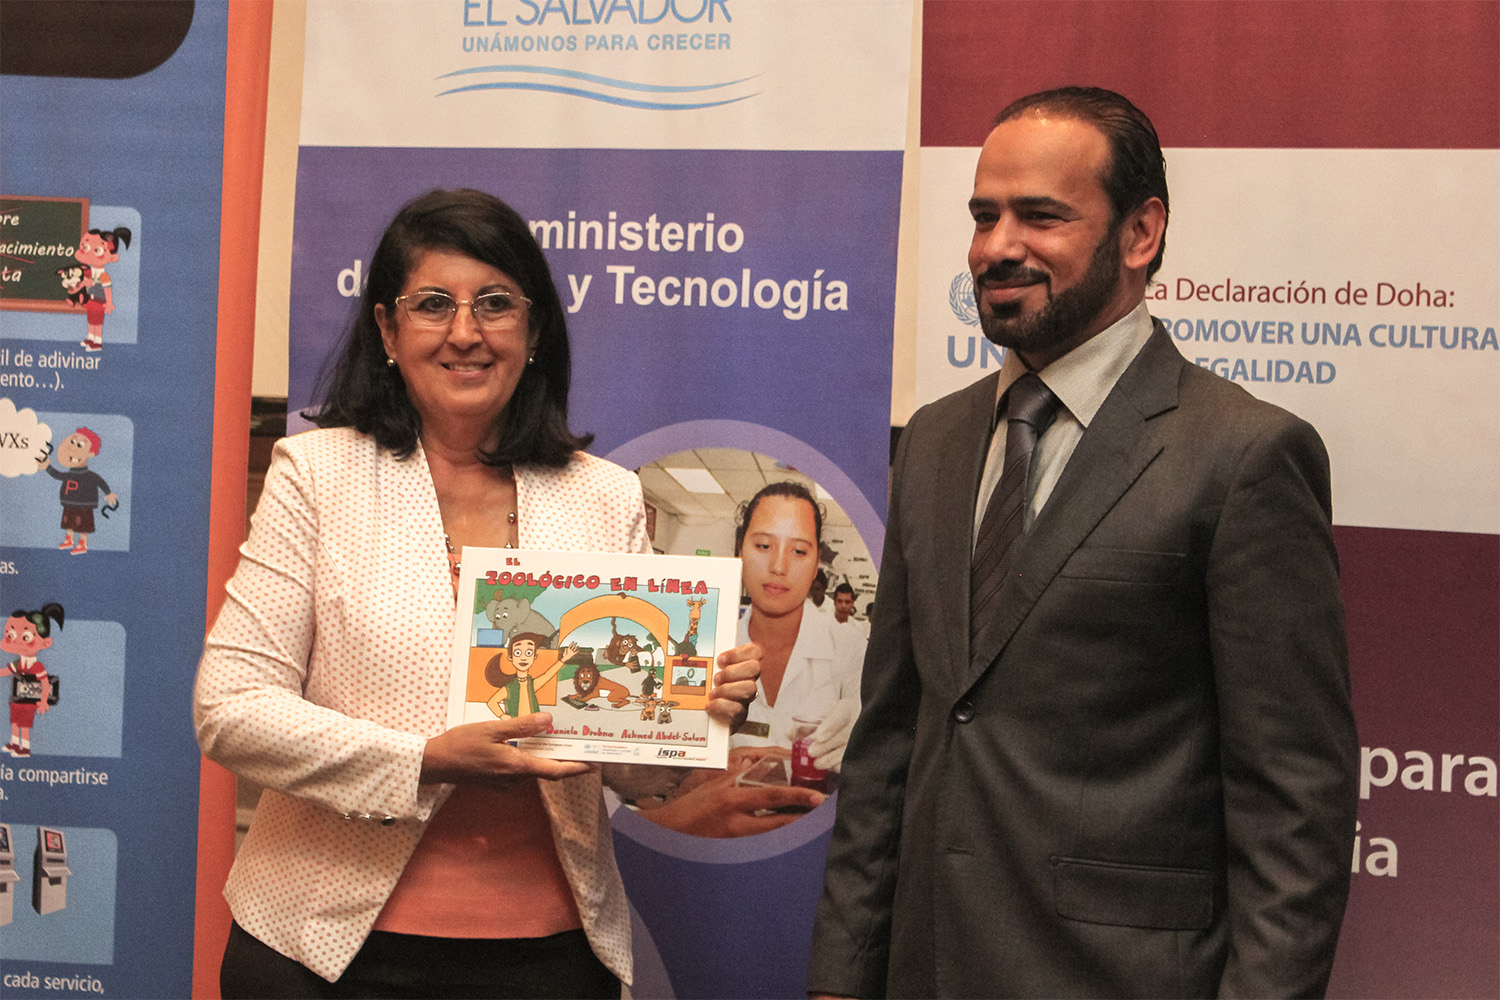 E4J materials: an integral part of El Salvador's national school campaign on cybercrime prevention